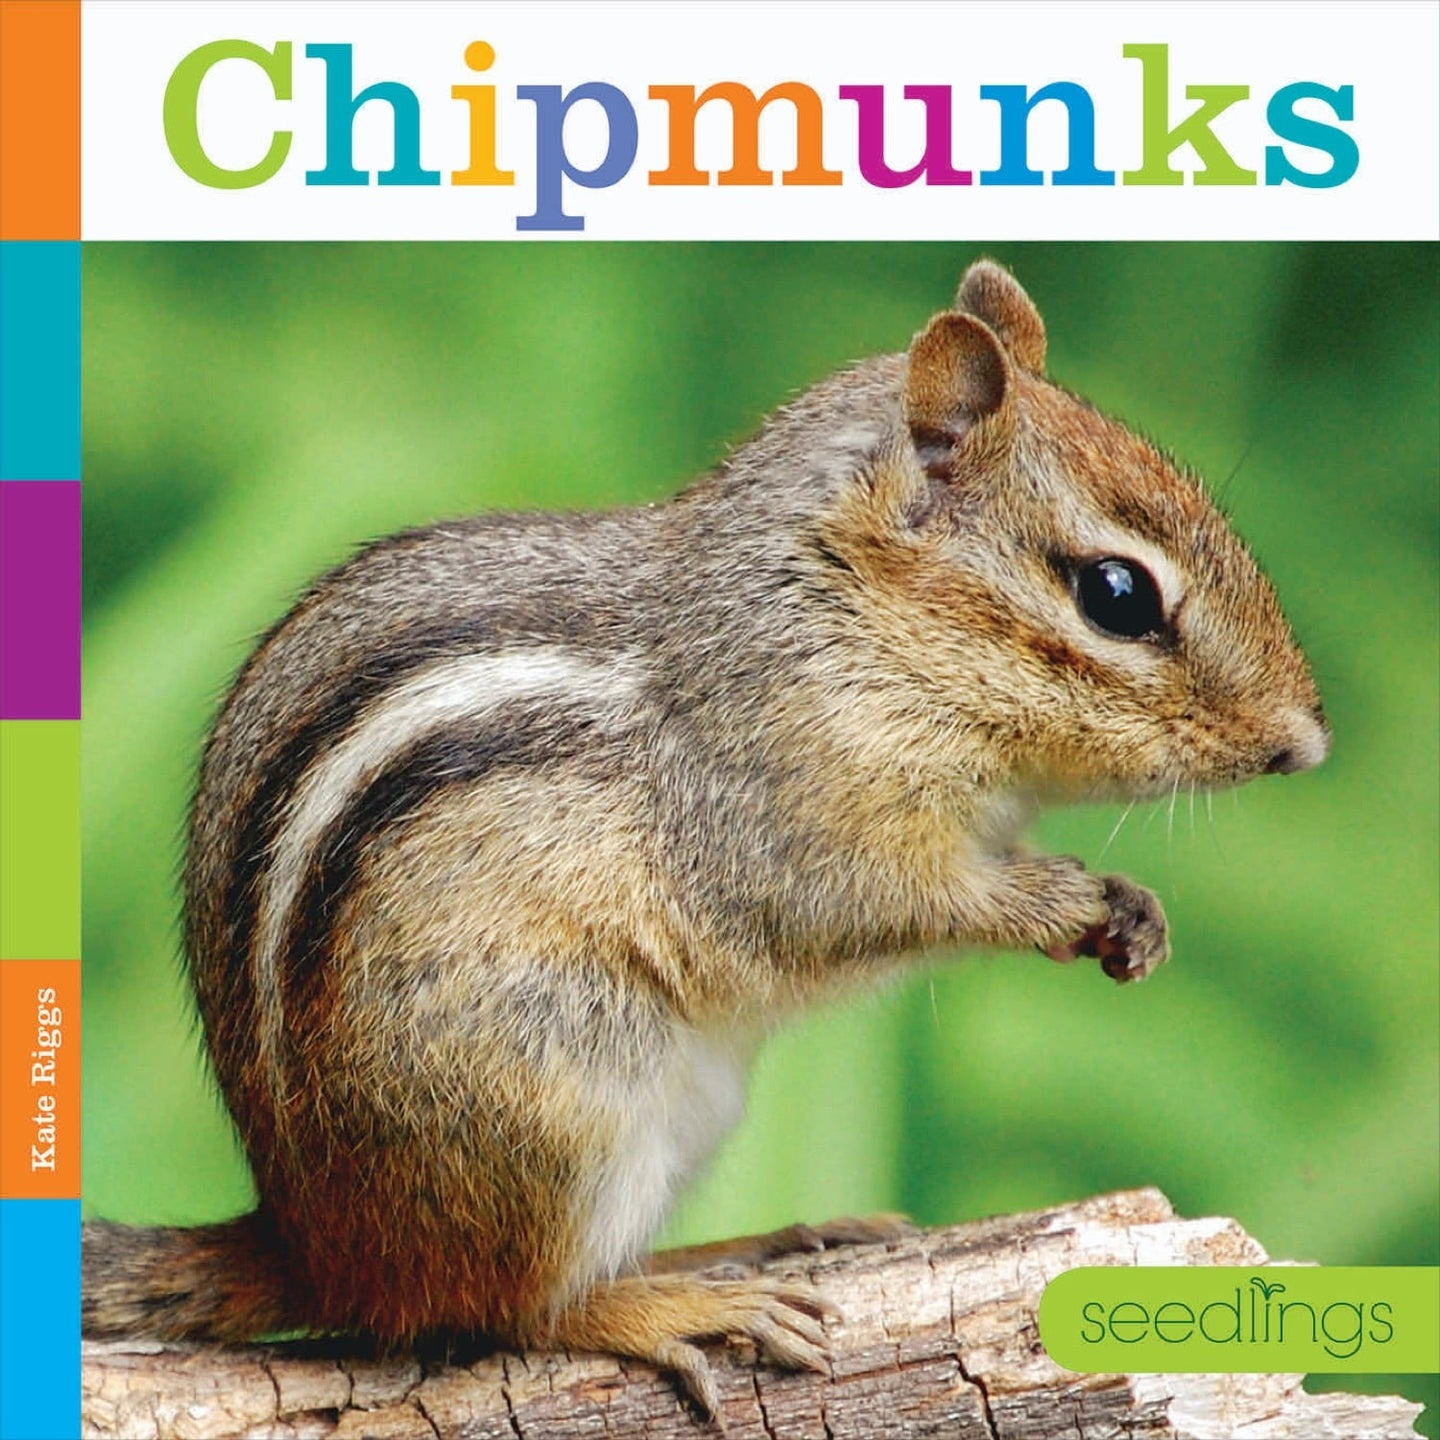 Seedlings: Chipmunks